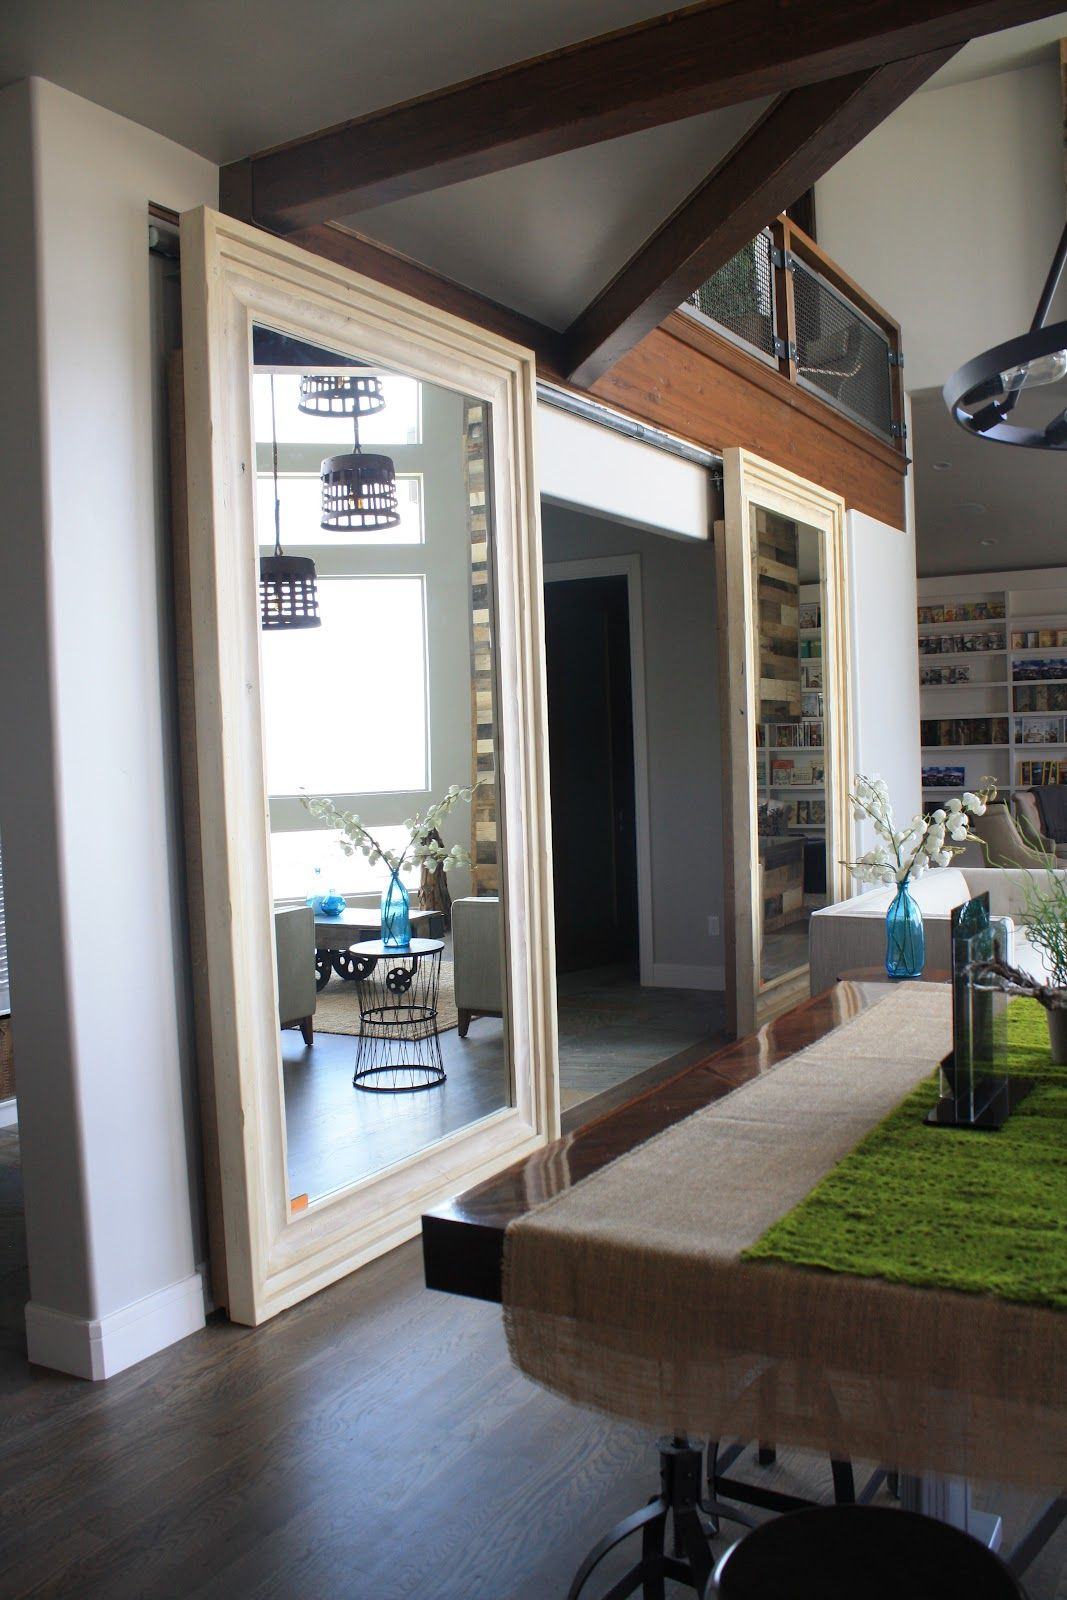 Exceptionnel Great Idea For Sliding Doors  Mirrored! 6th Street Design School: Utah  County